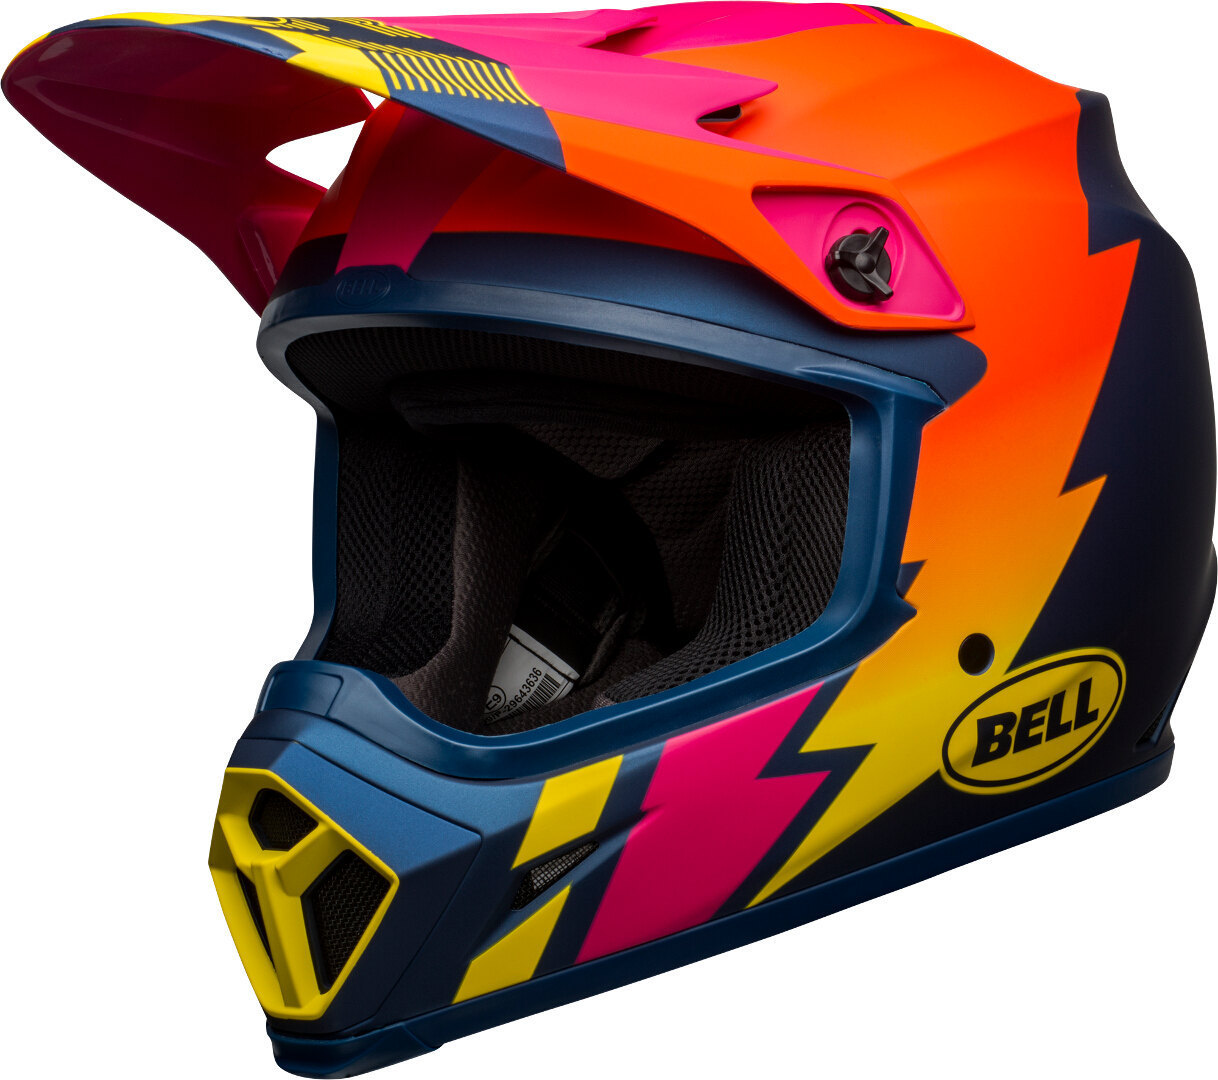 Bell MX-9 Strike MIPS Motocross Helm, blau-orange, Größe S, blau-orange, Größe S